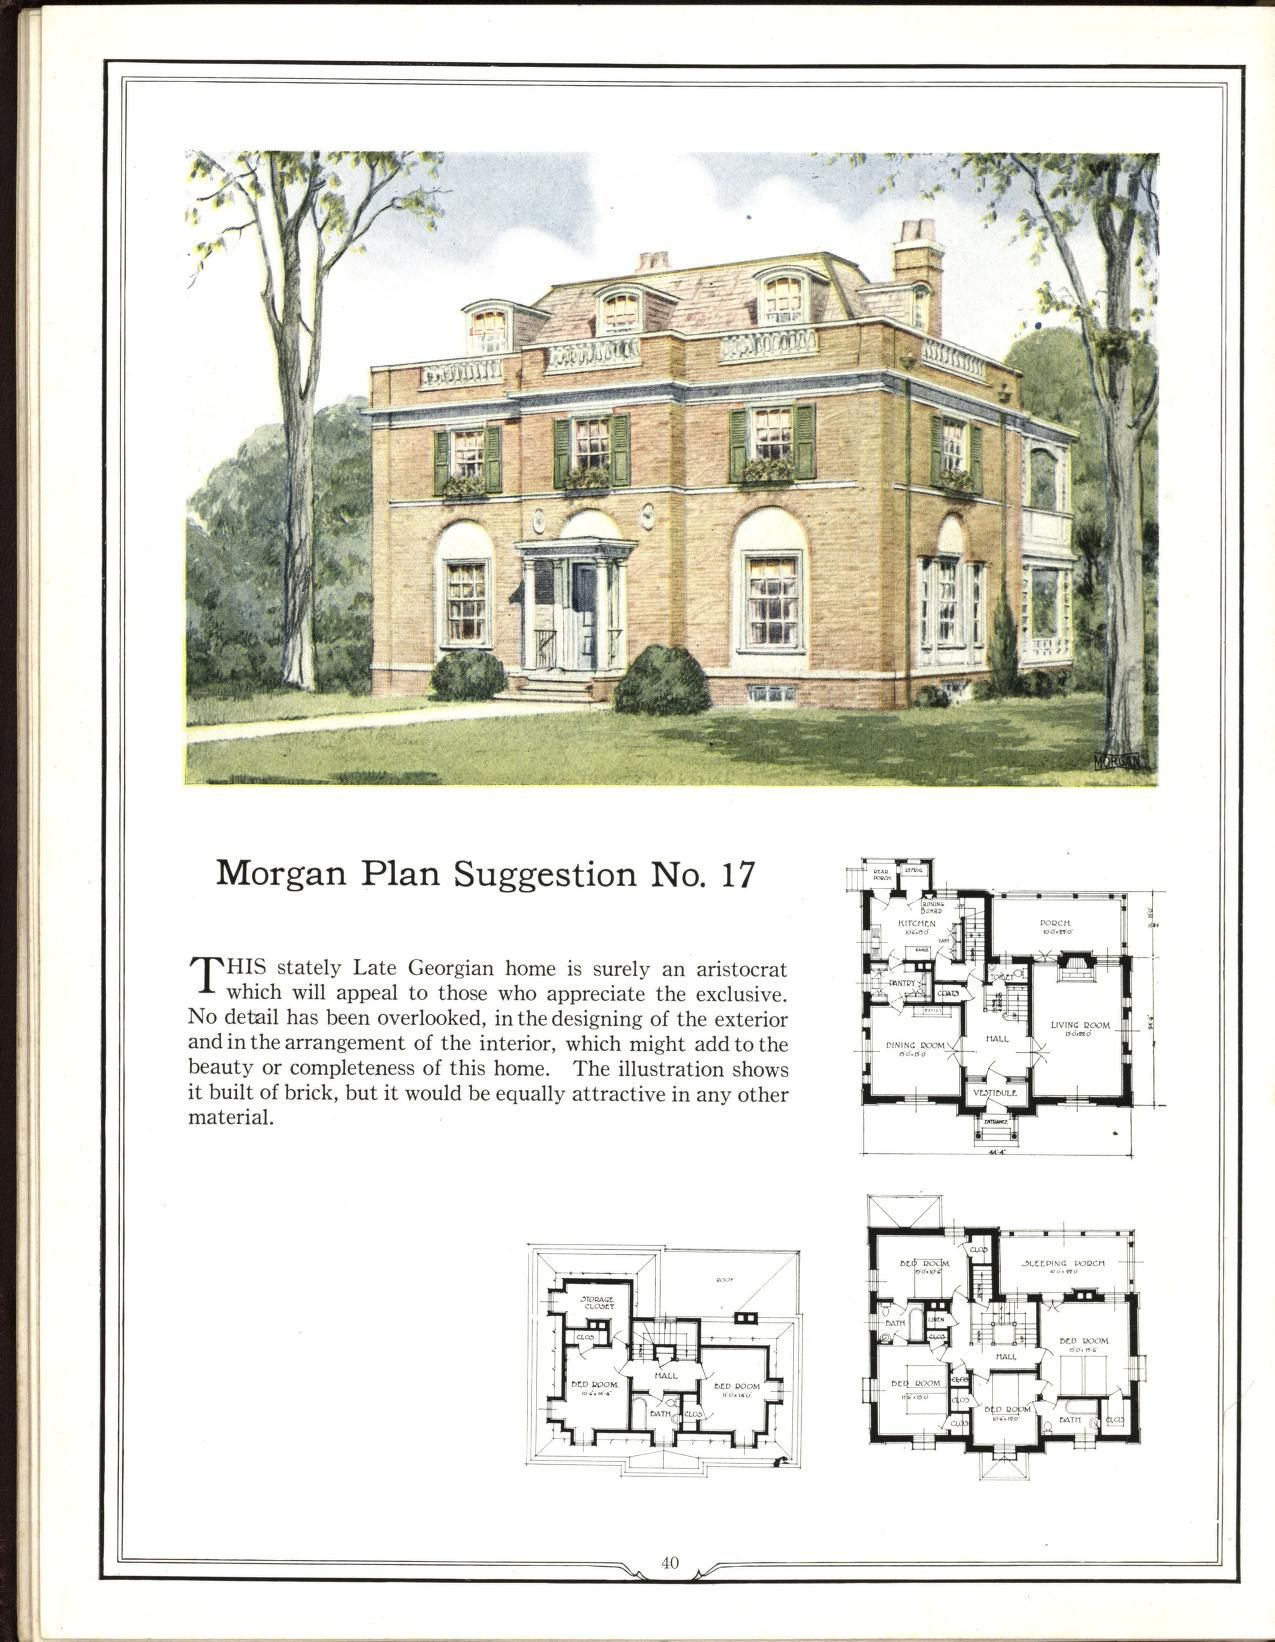 Morgan Plan No 17 One Of Many Plans Both Large And Small In